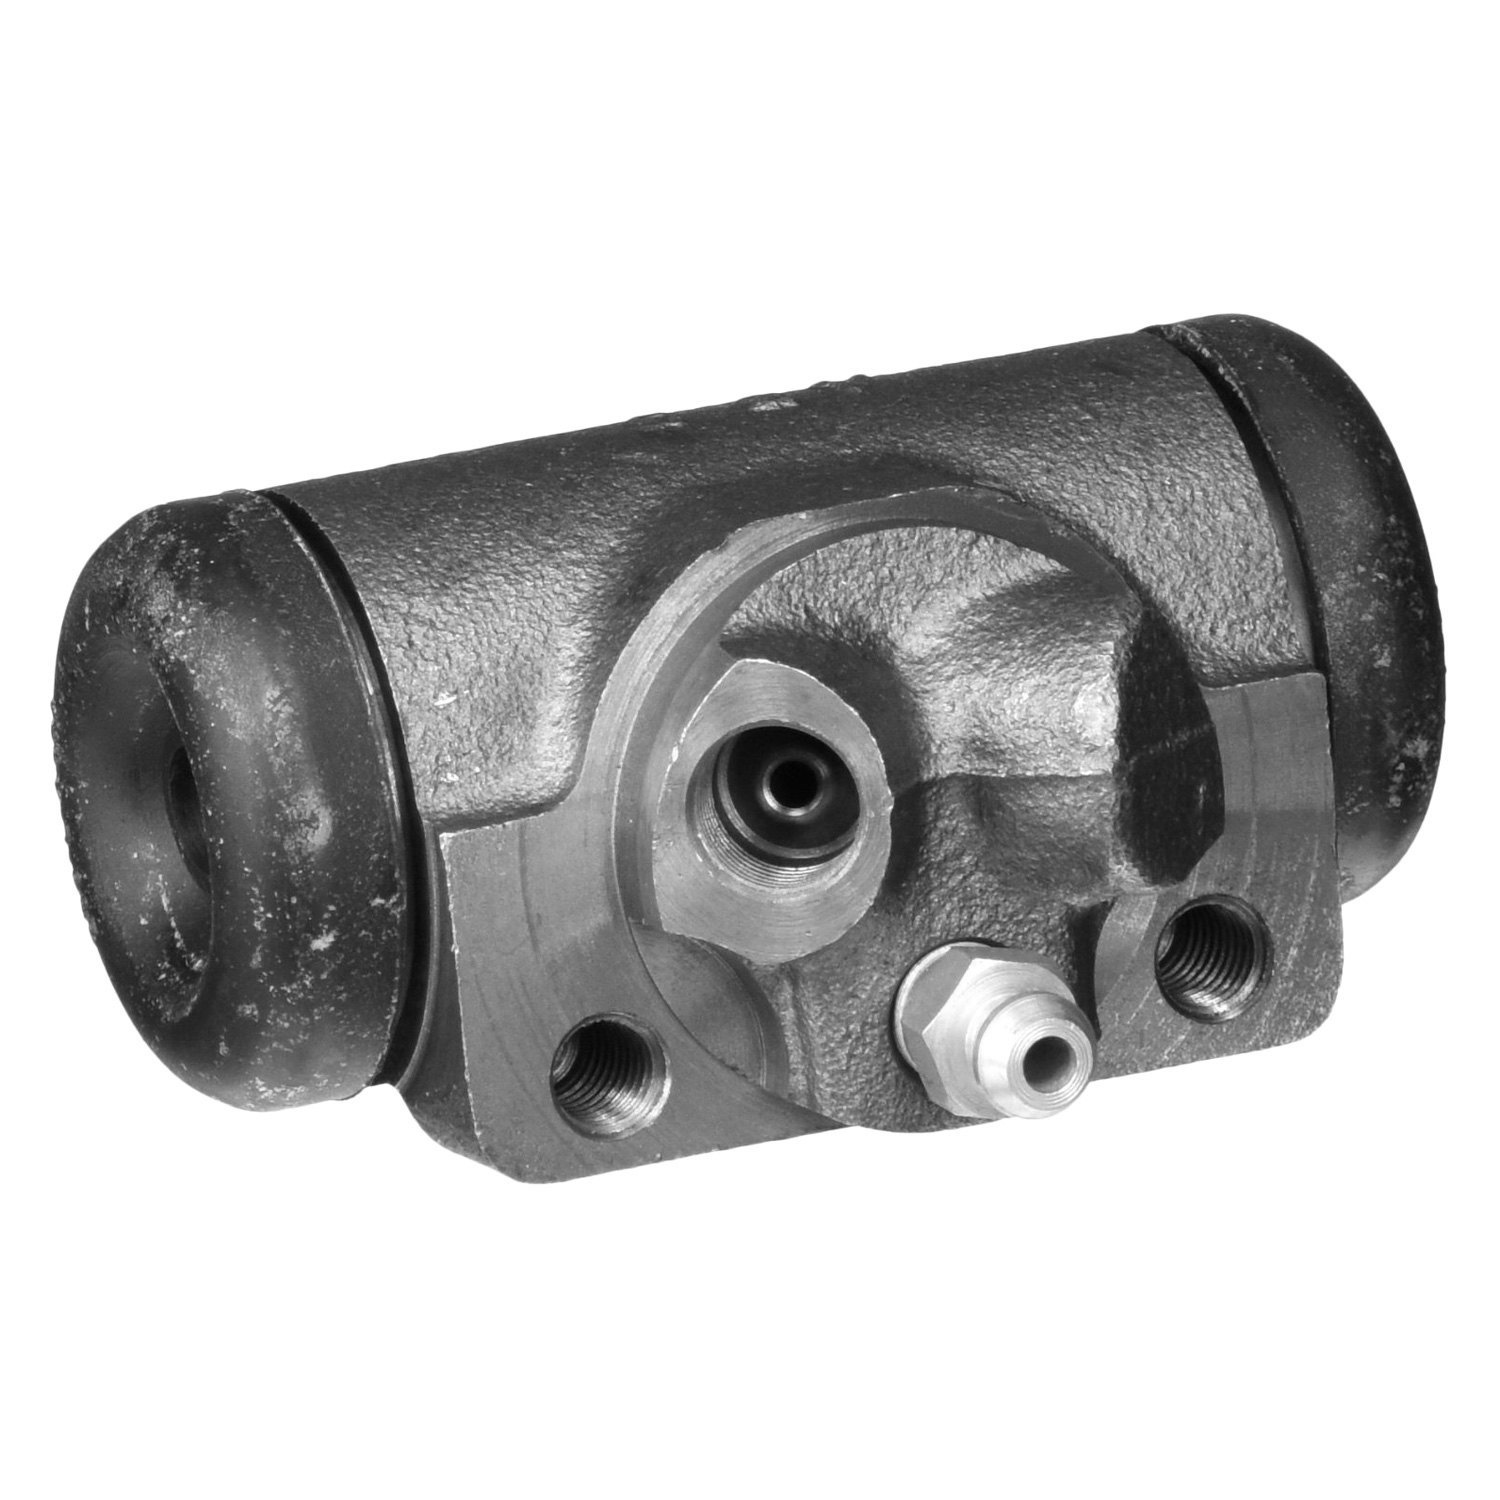 Motorcraft 174 Ford F 250 1996 Rear Drum Brake Wheel Cylinder